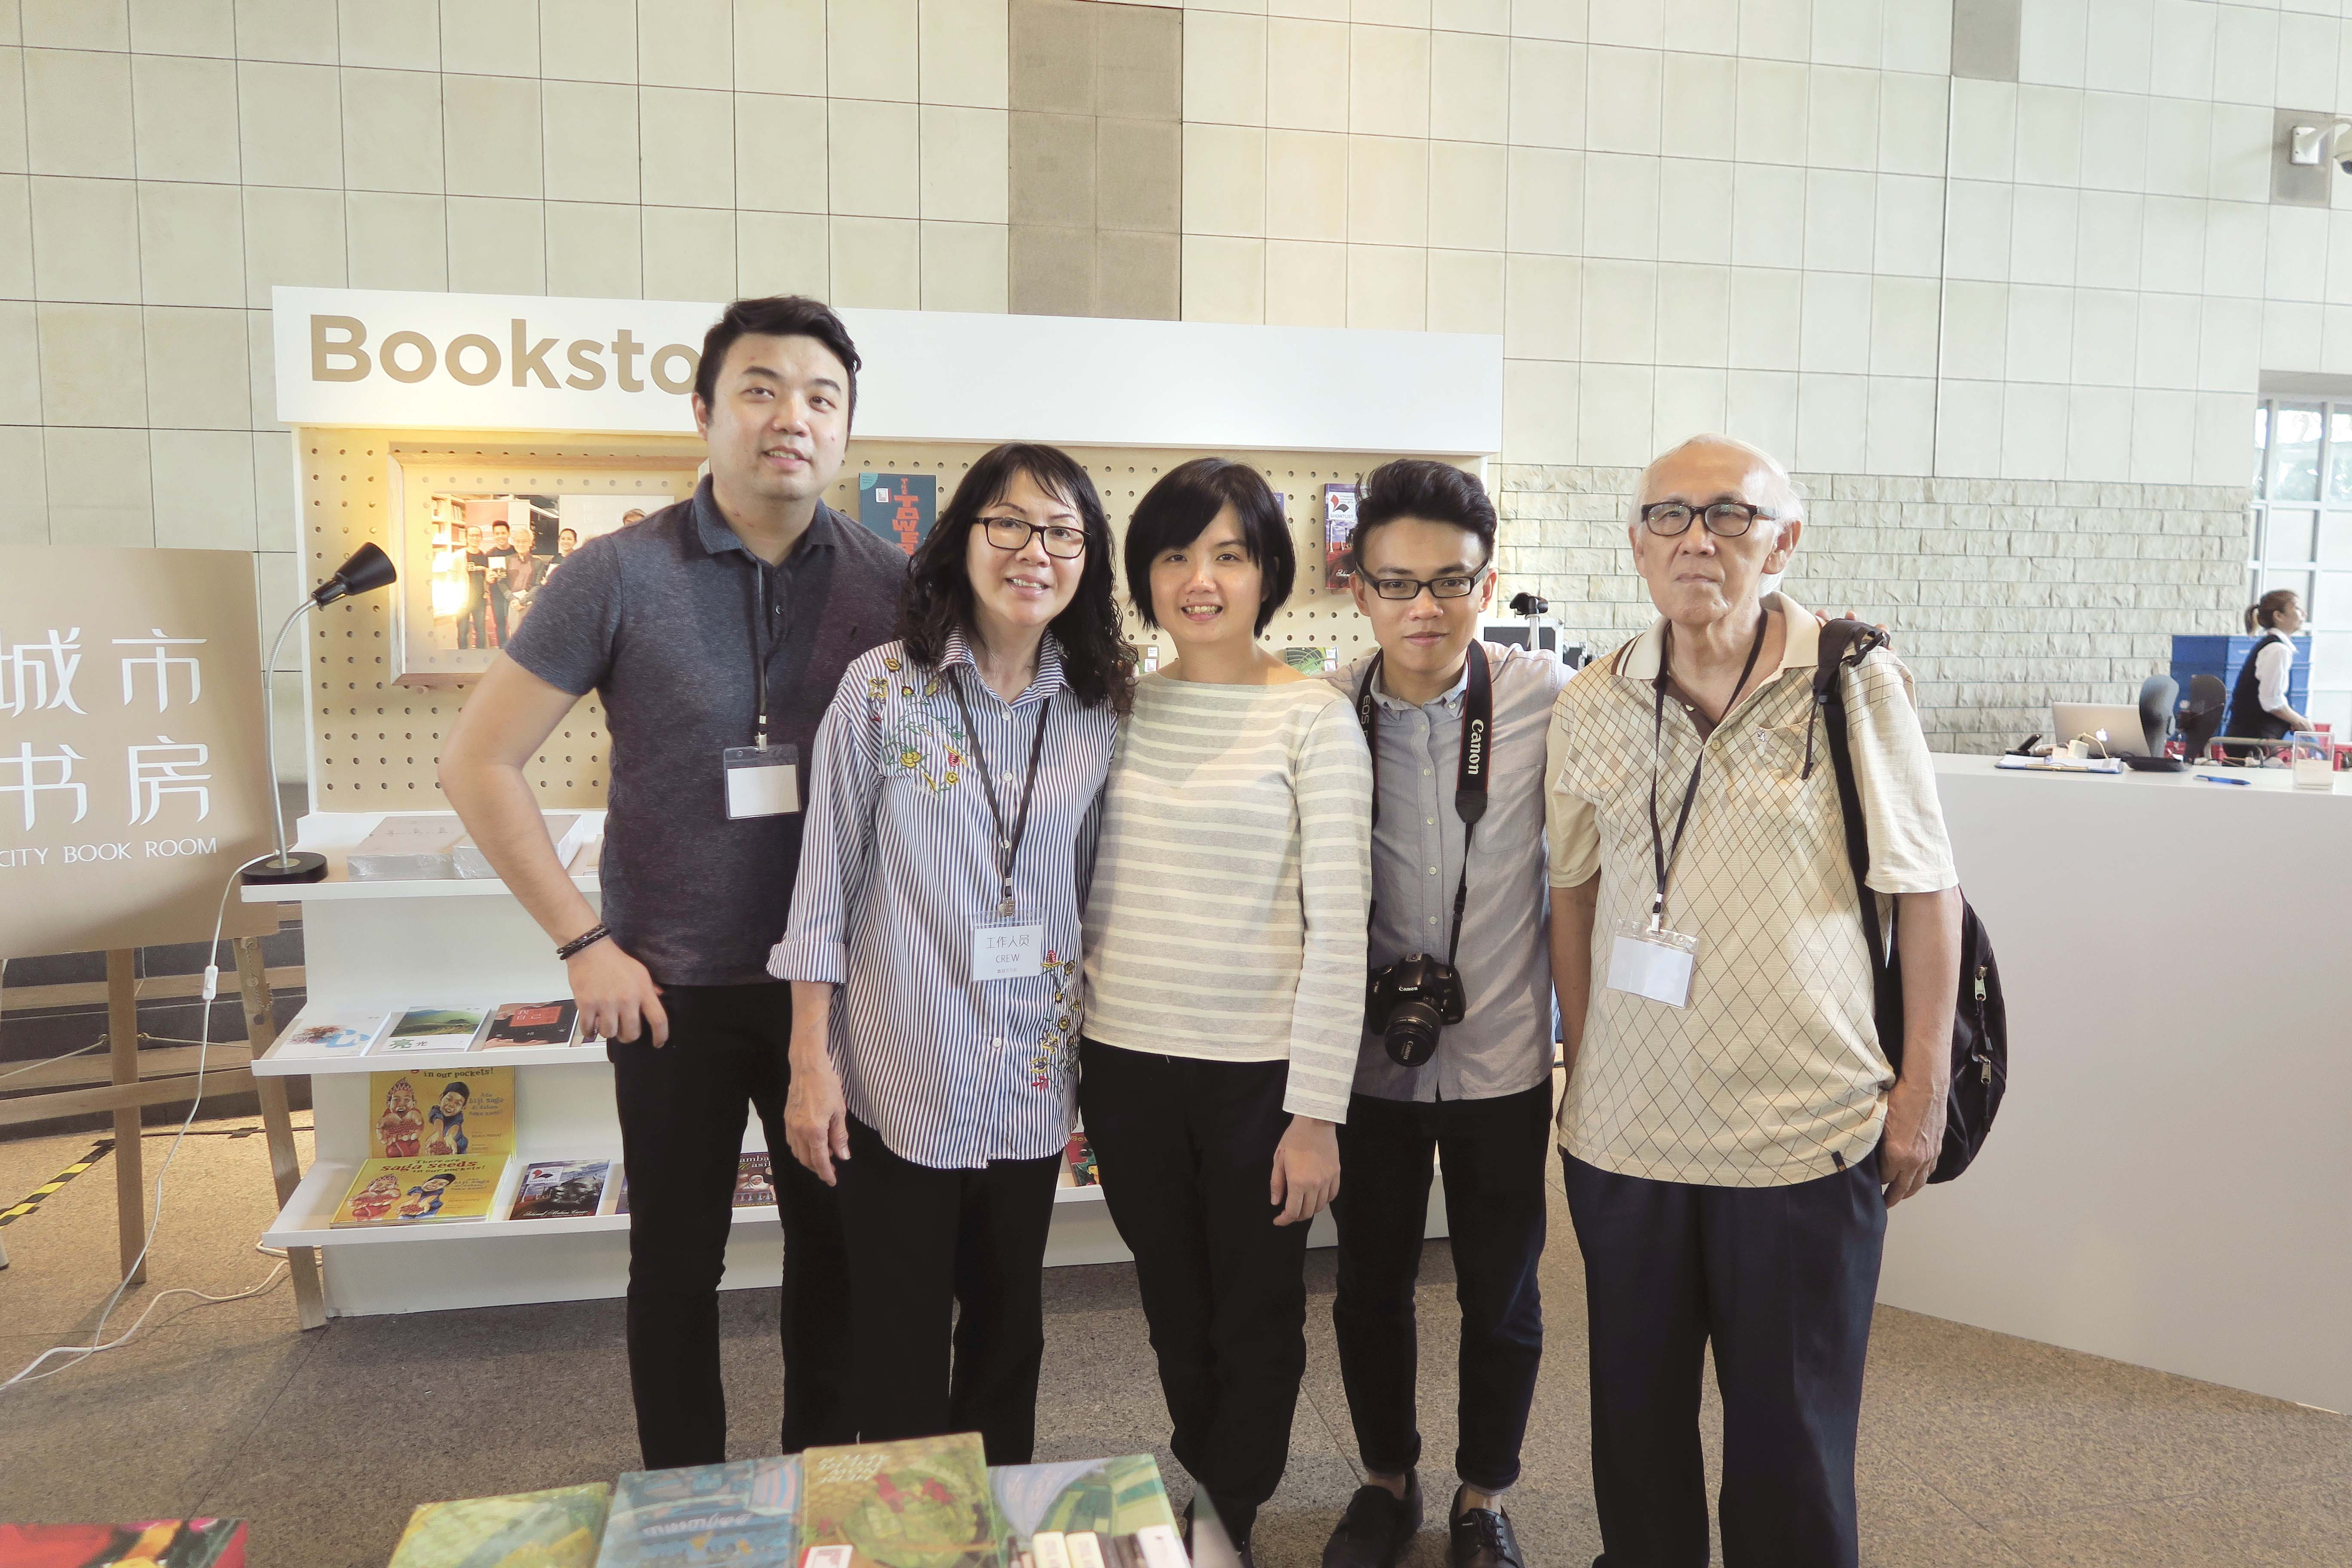 At City Book Room's pop-up store during the National Library Board's Read! Fest 2017, owner Tan Waln Ching (middle) with (from left) her brother, mother, husband Paul Kam, and Chng Ler Thian, who helps to tend to the bookstore